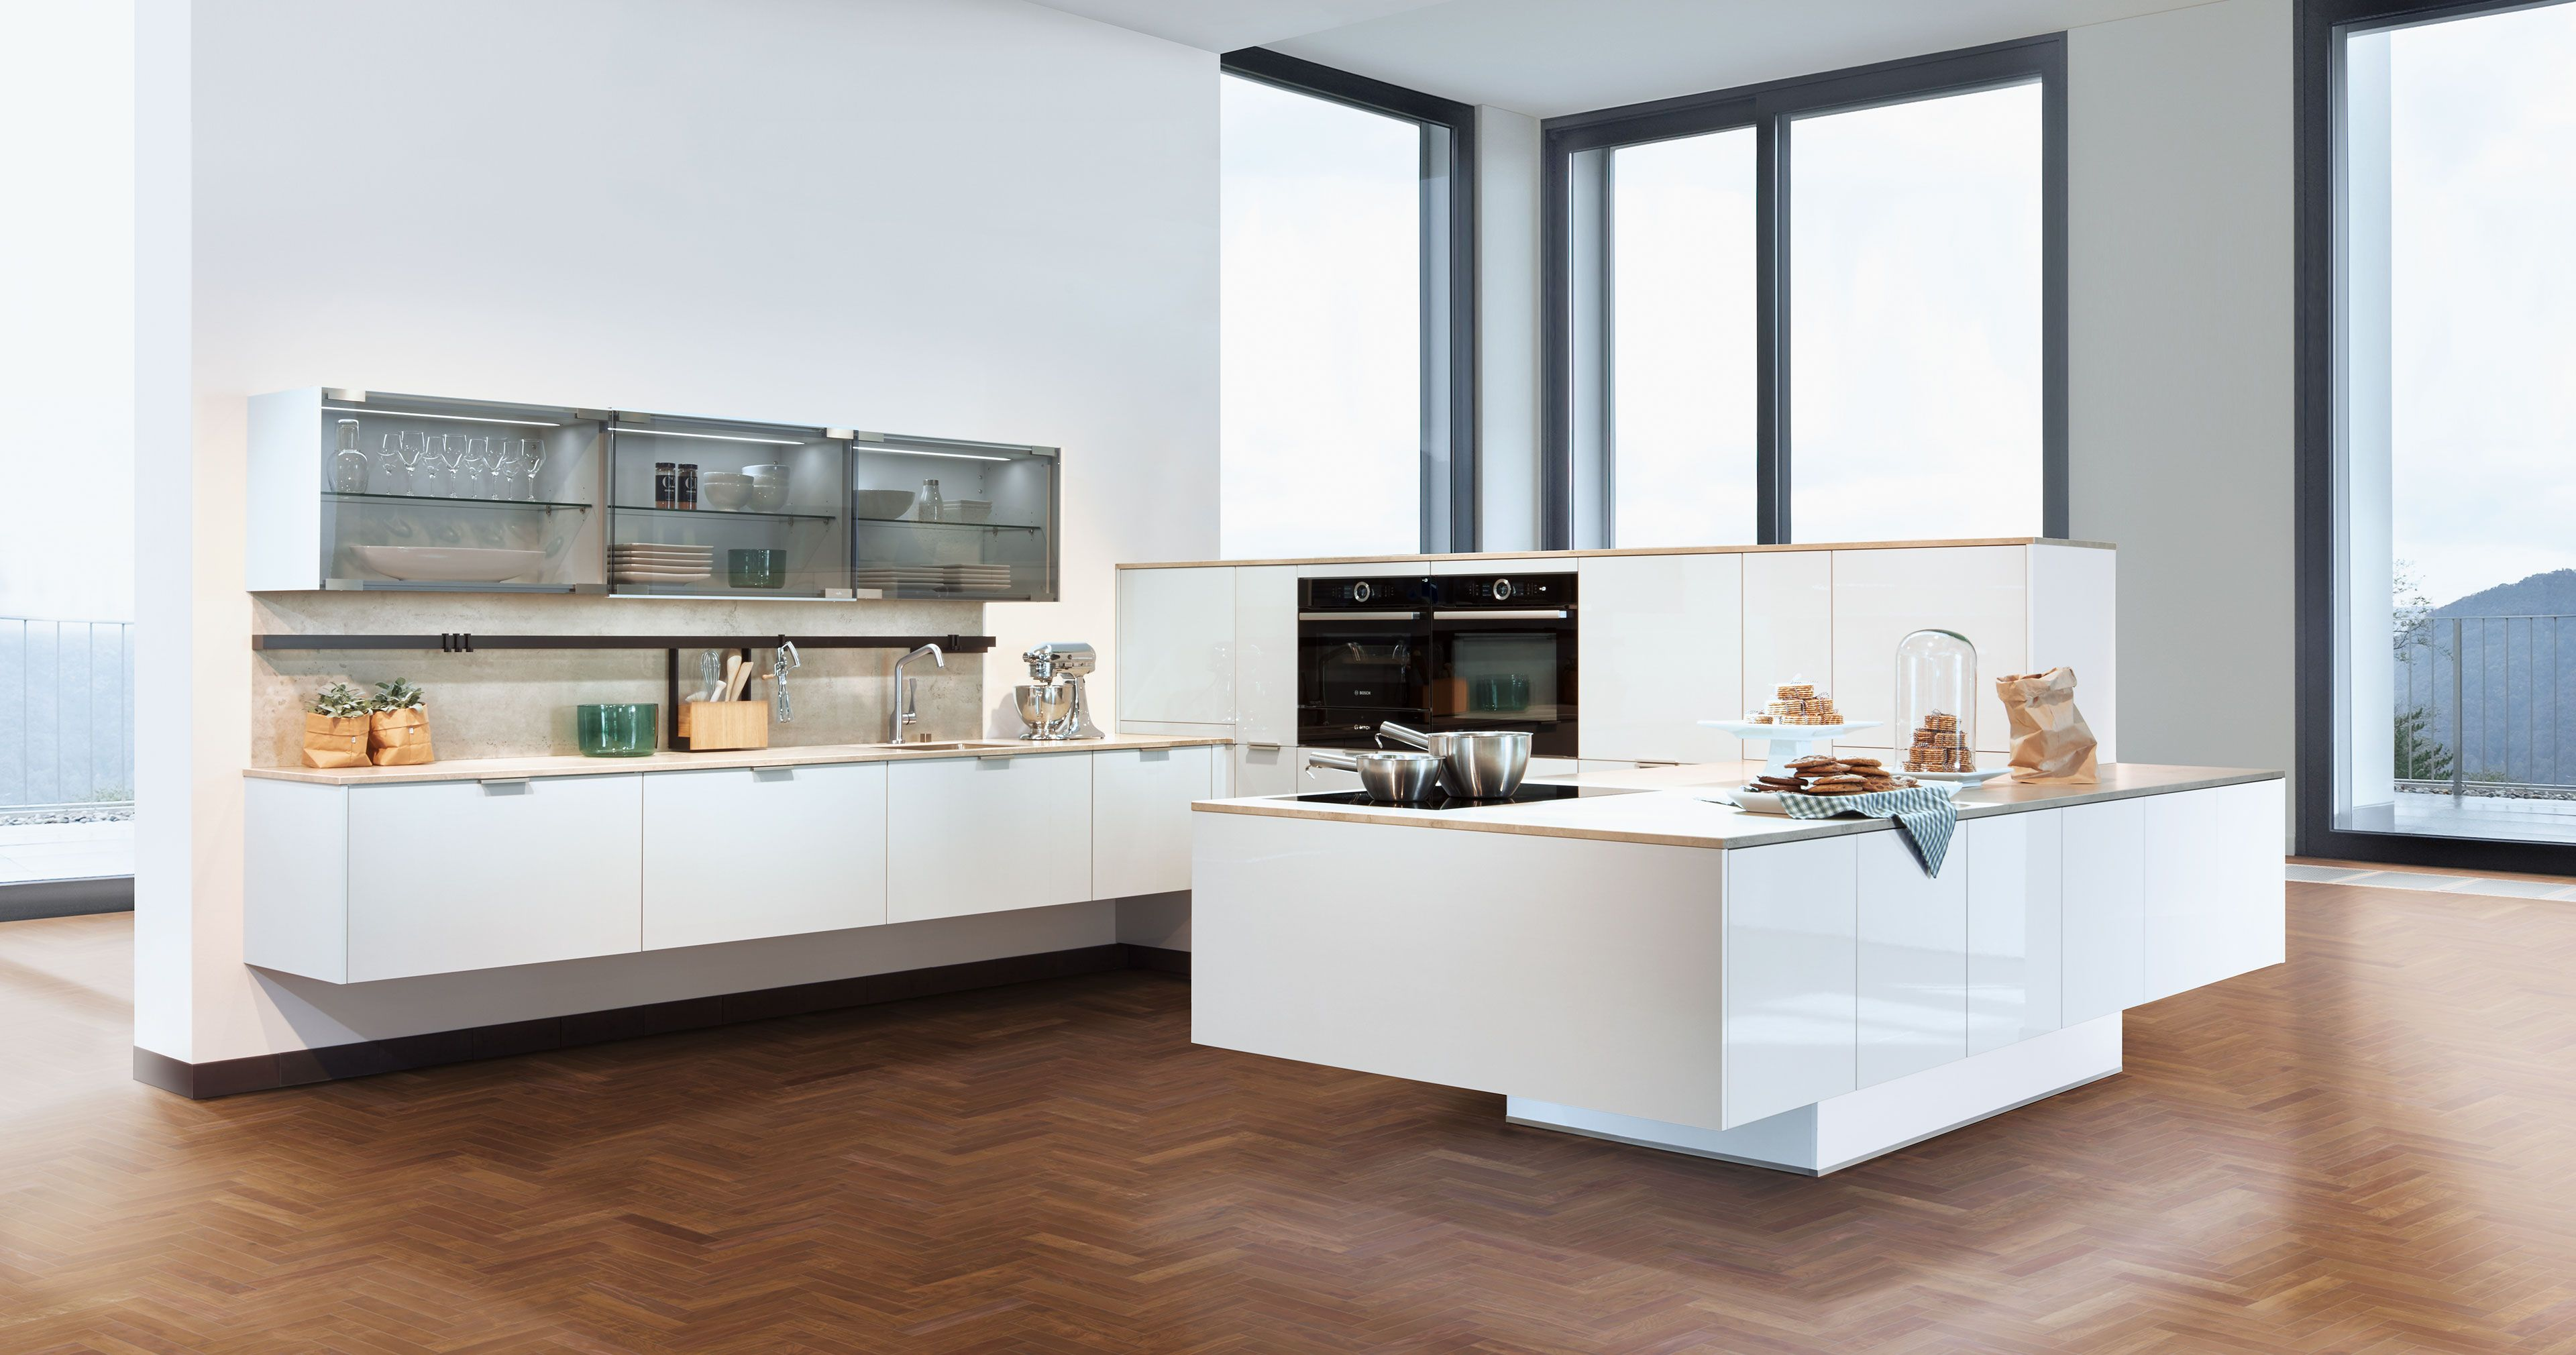 From Our Affordable Kitchen Line Good Taste Is Not A Question Of Price Riva Shines In A Neutral Light Grey The Sur Zeyko Kuchen Moderne Kuche Kuchen Design